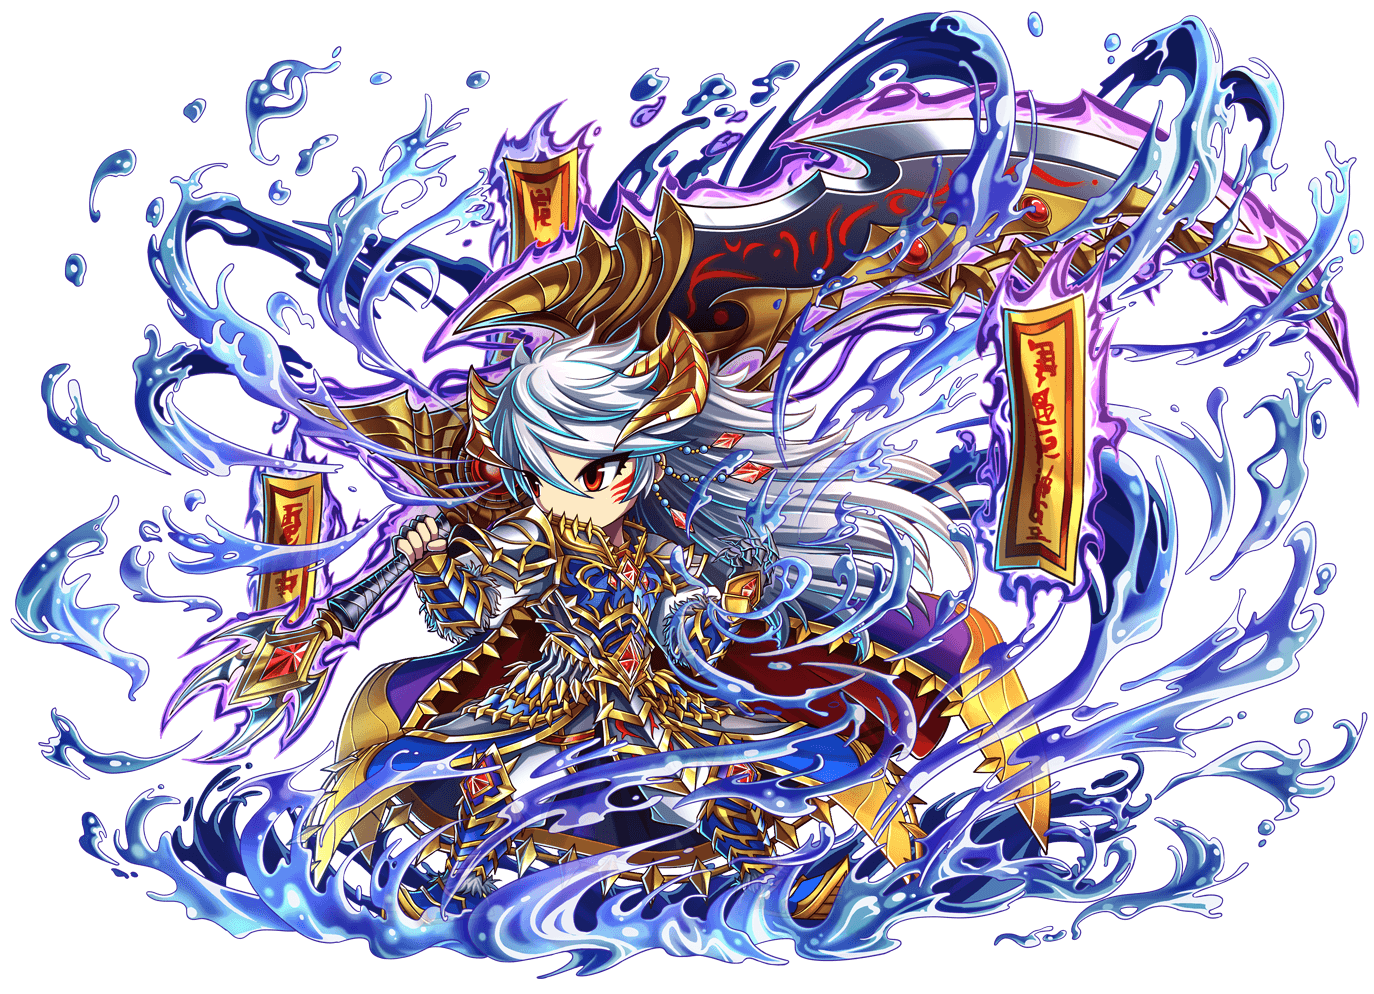 execrated fei is what i wished unit art looked like for 7